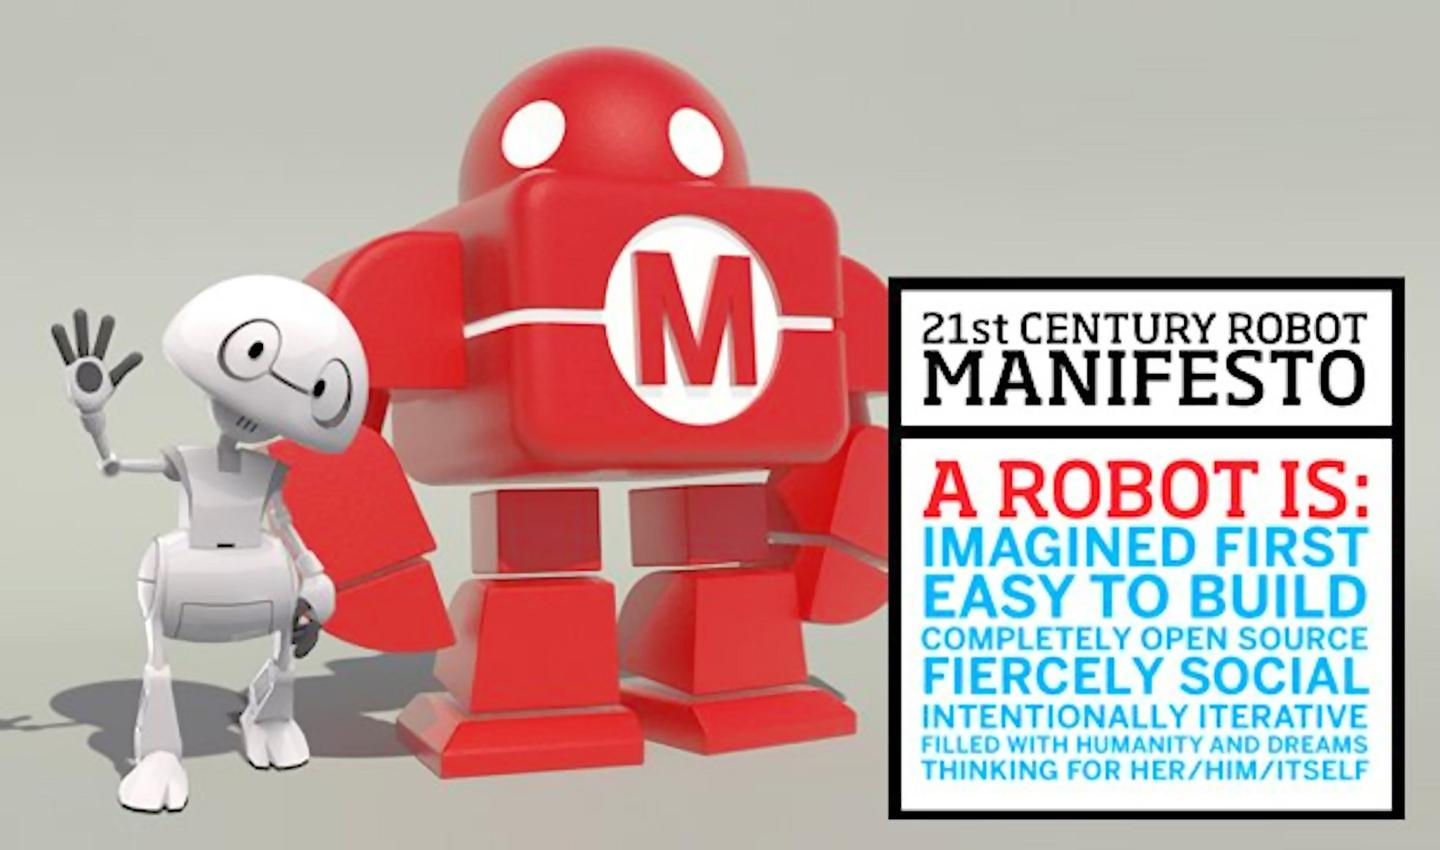 Intel's new open source 3D printed robot Jimmie (left) and the 21st Century robot manifesto (Image: robots21.com)